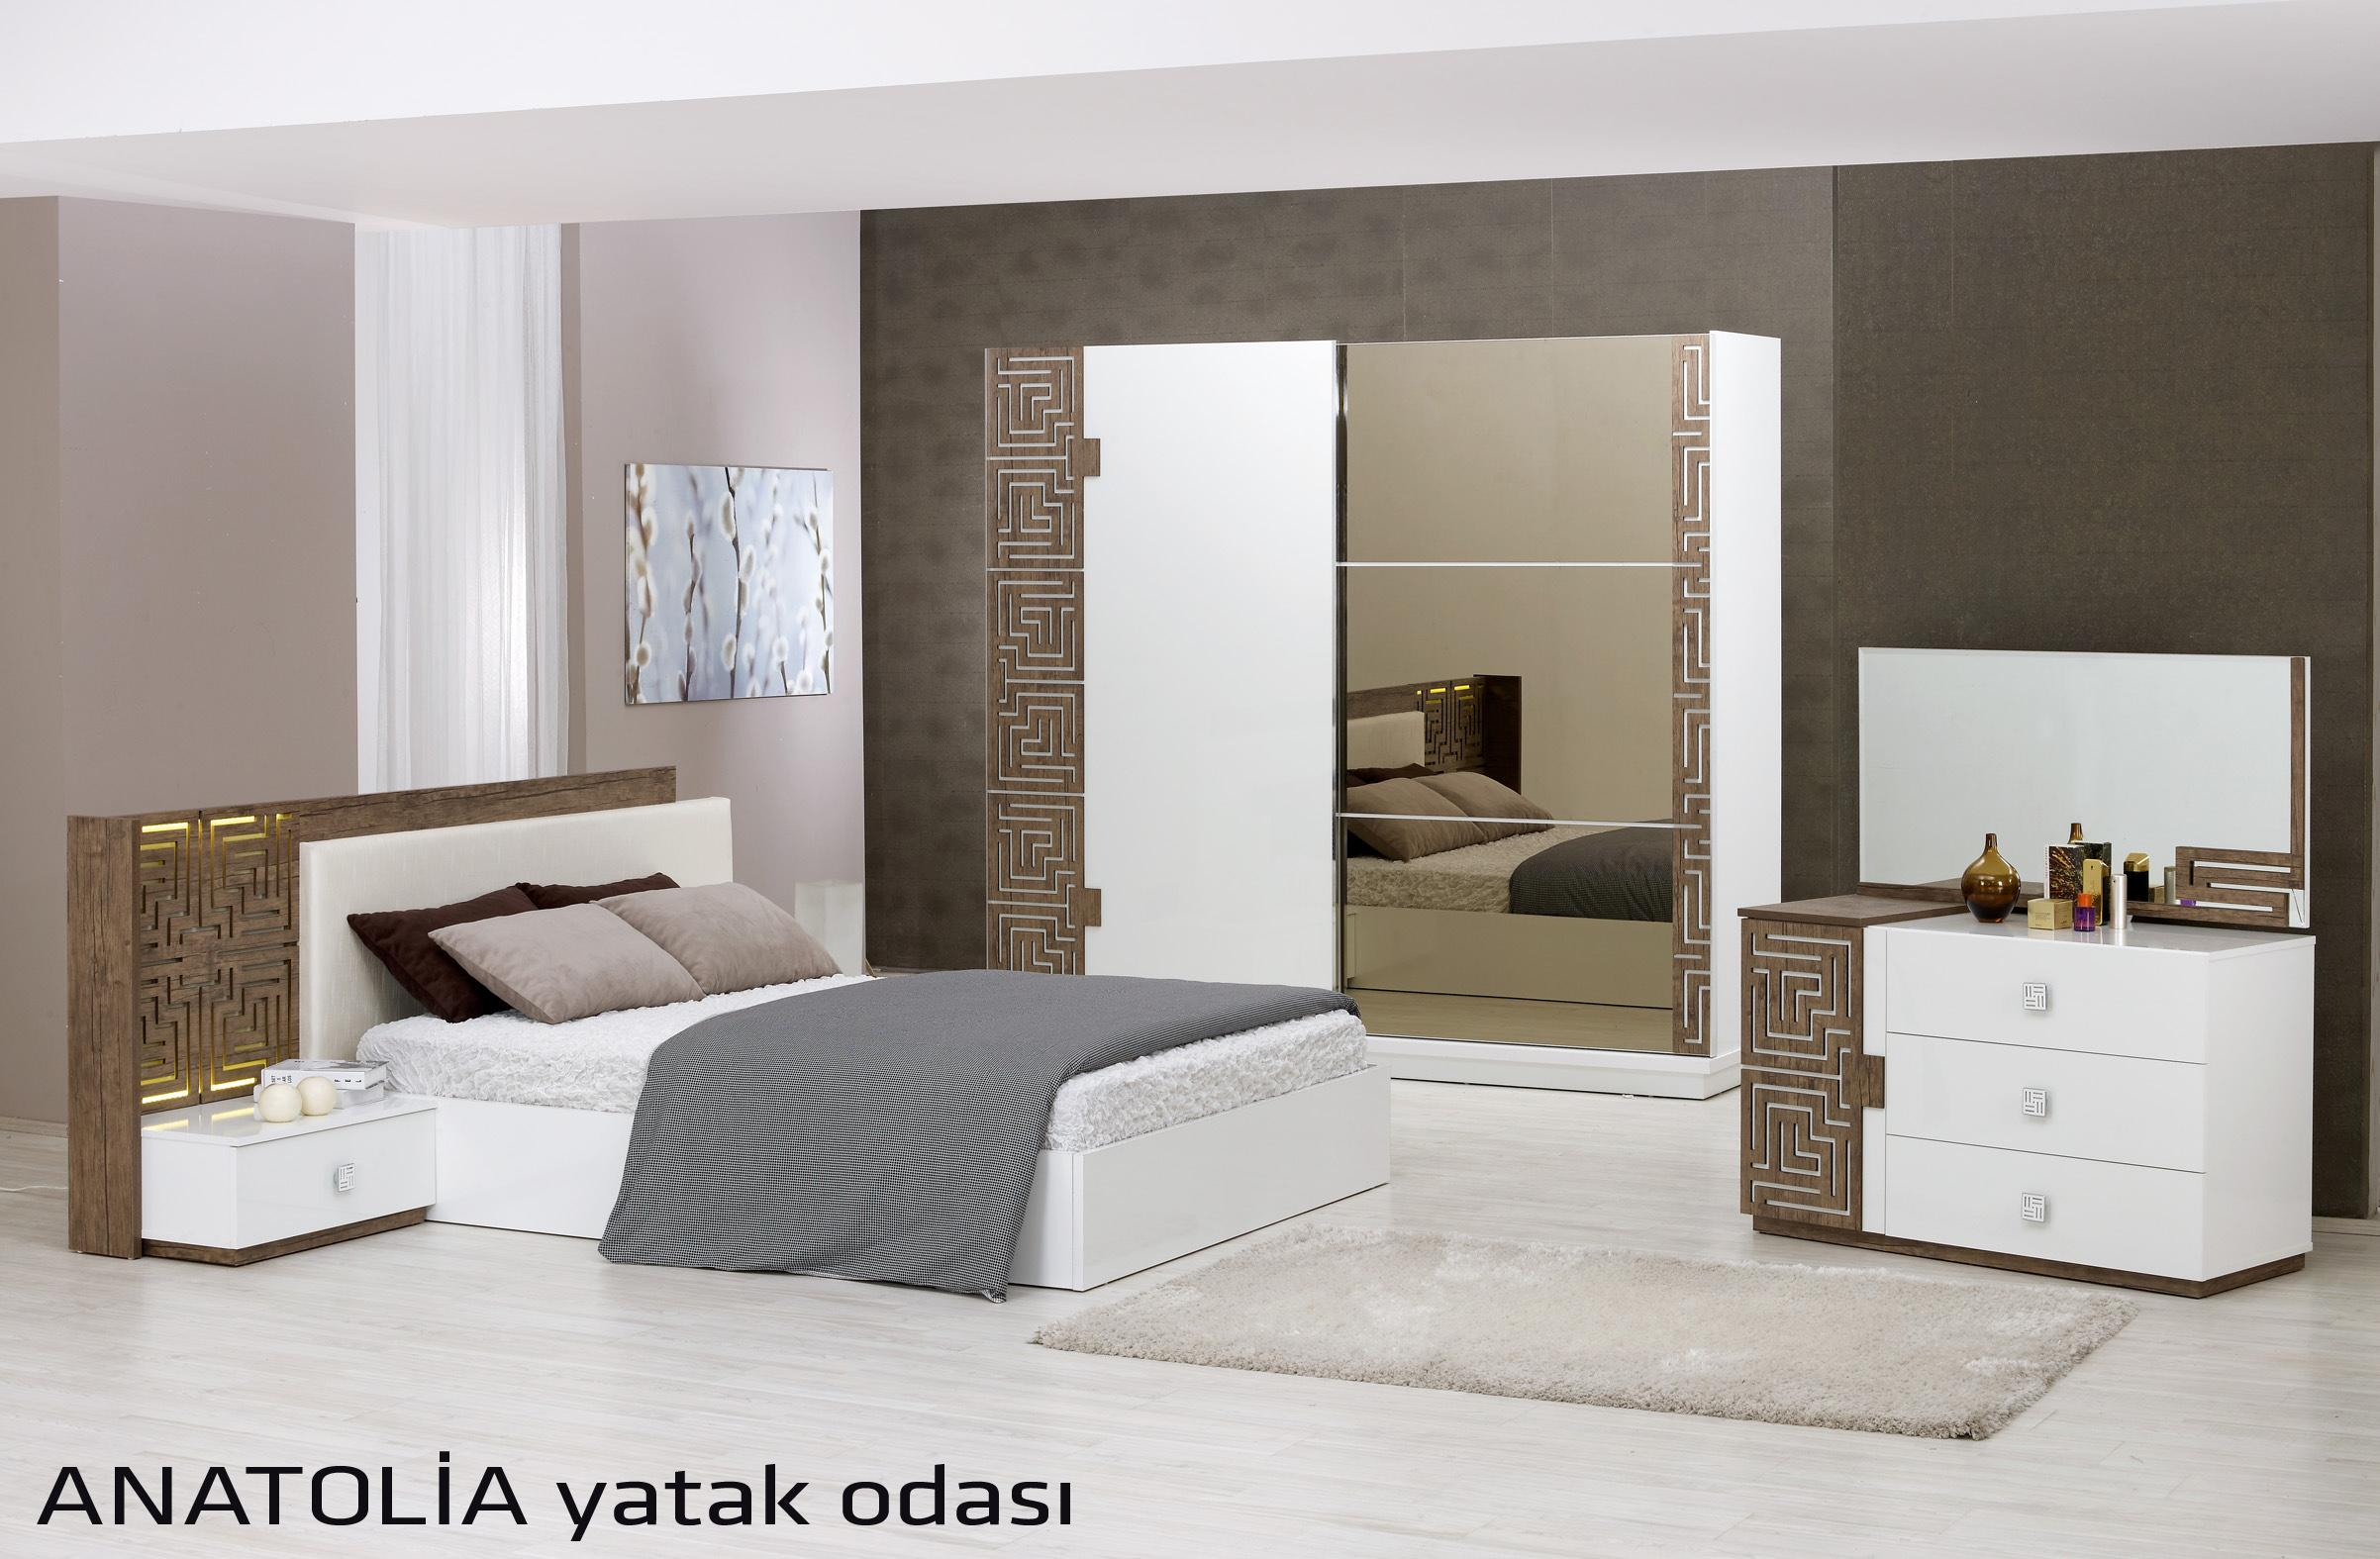 ensemble pour chambre coucher contemporain 1 0 50 0 pi ces par mois. Black Bedroom Furniture Sets. Home Design Ideas